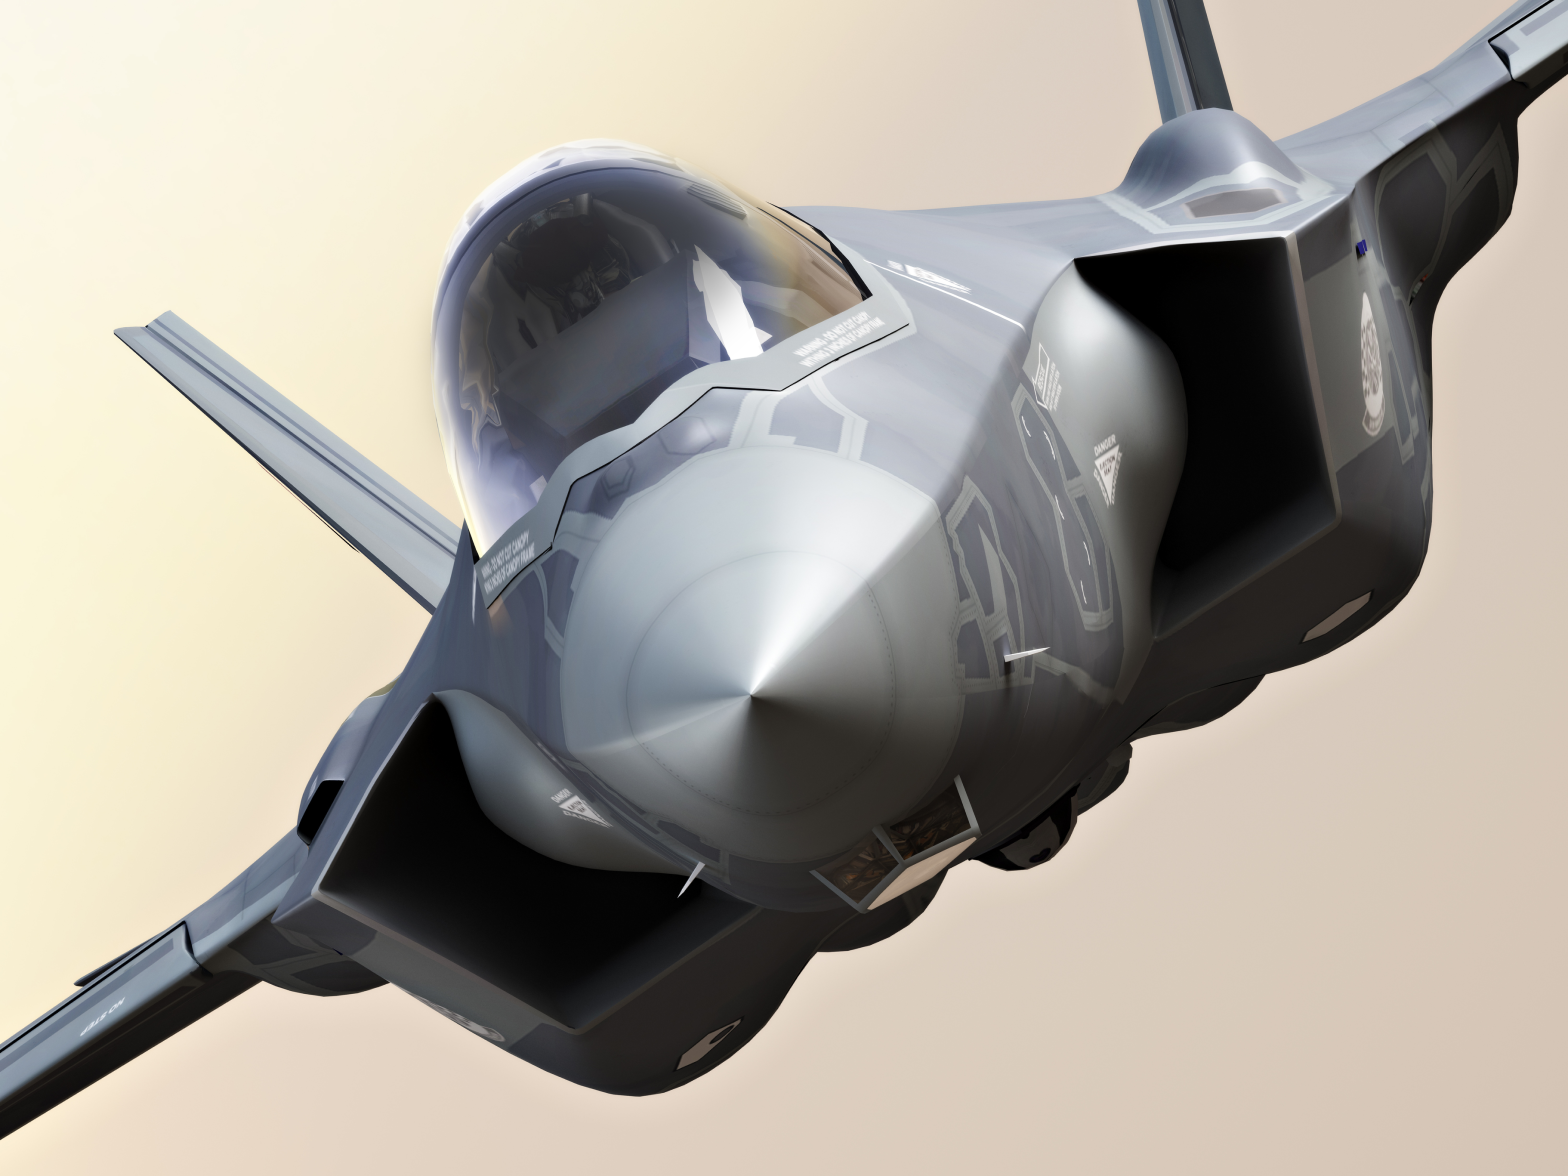 Lockheed Martin F35 fighter jet